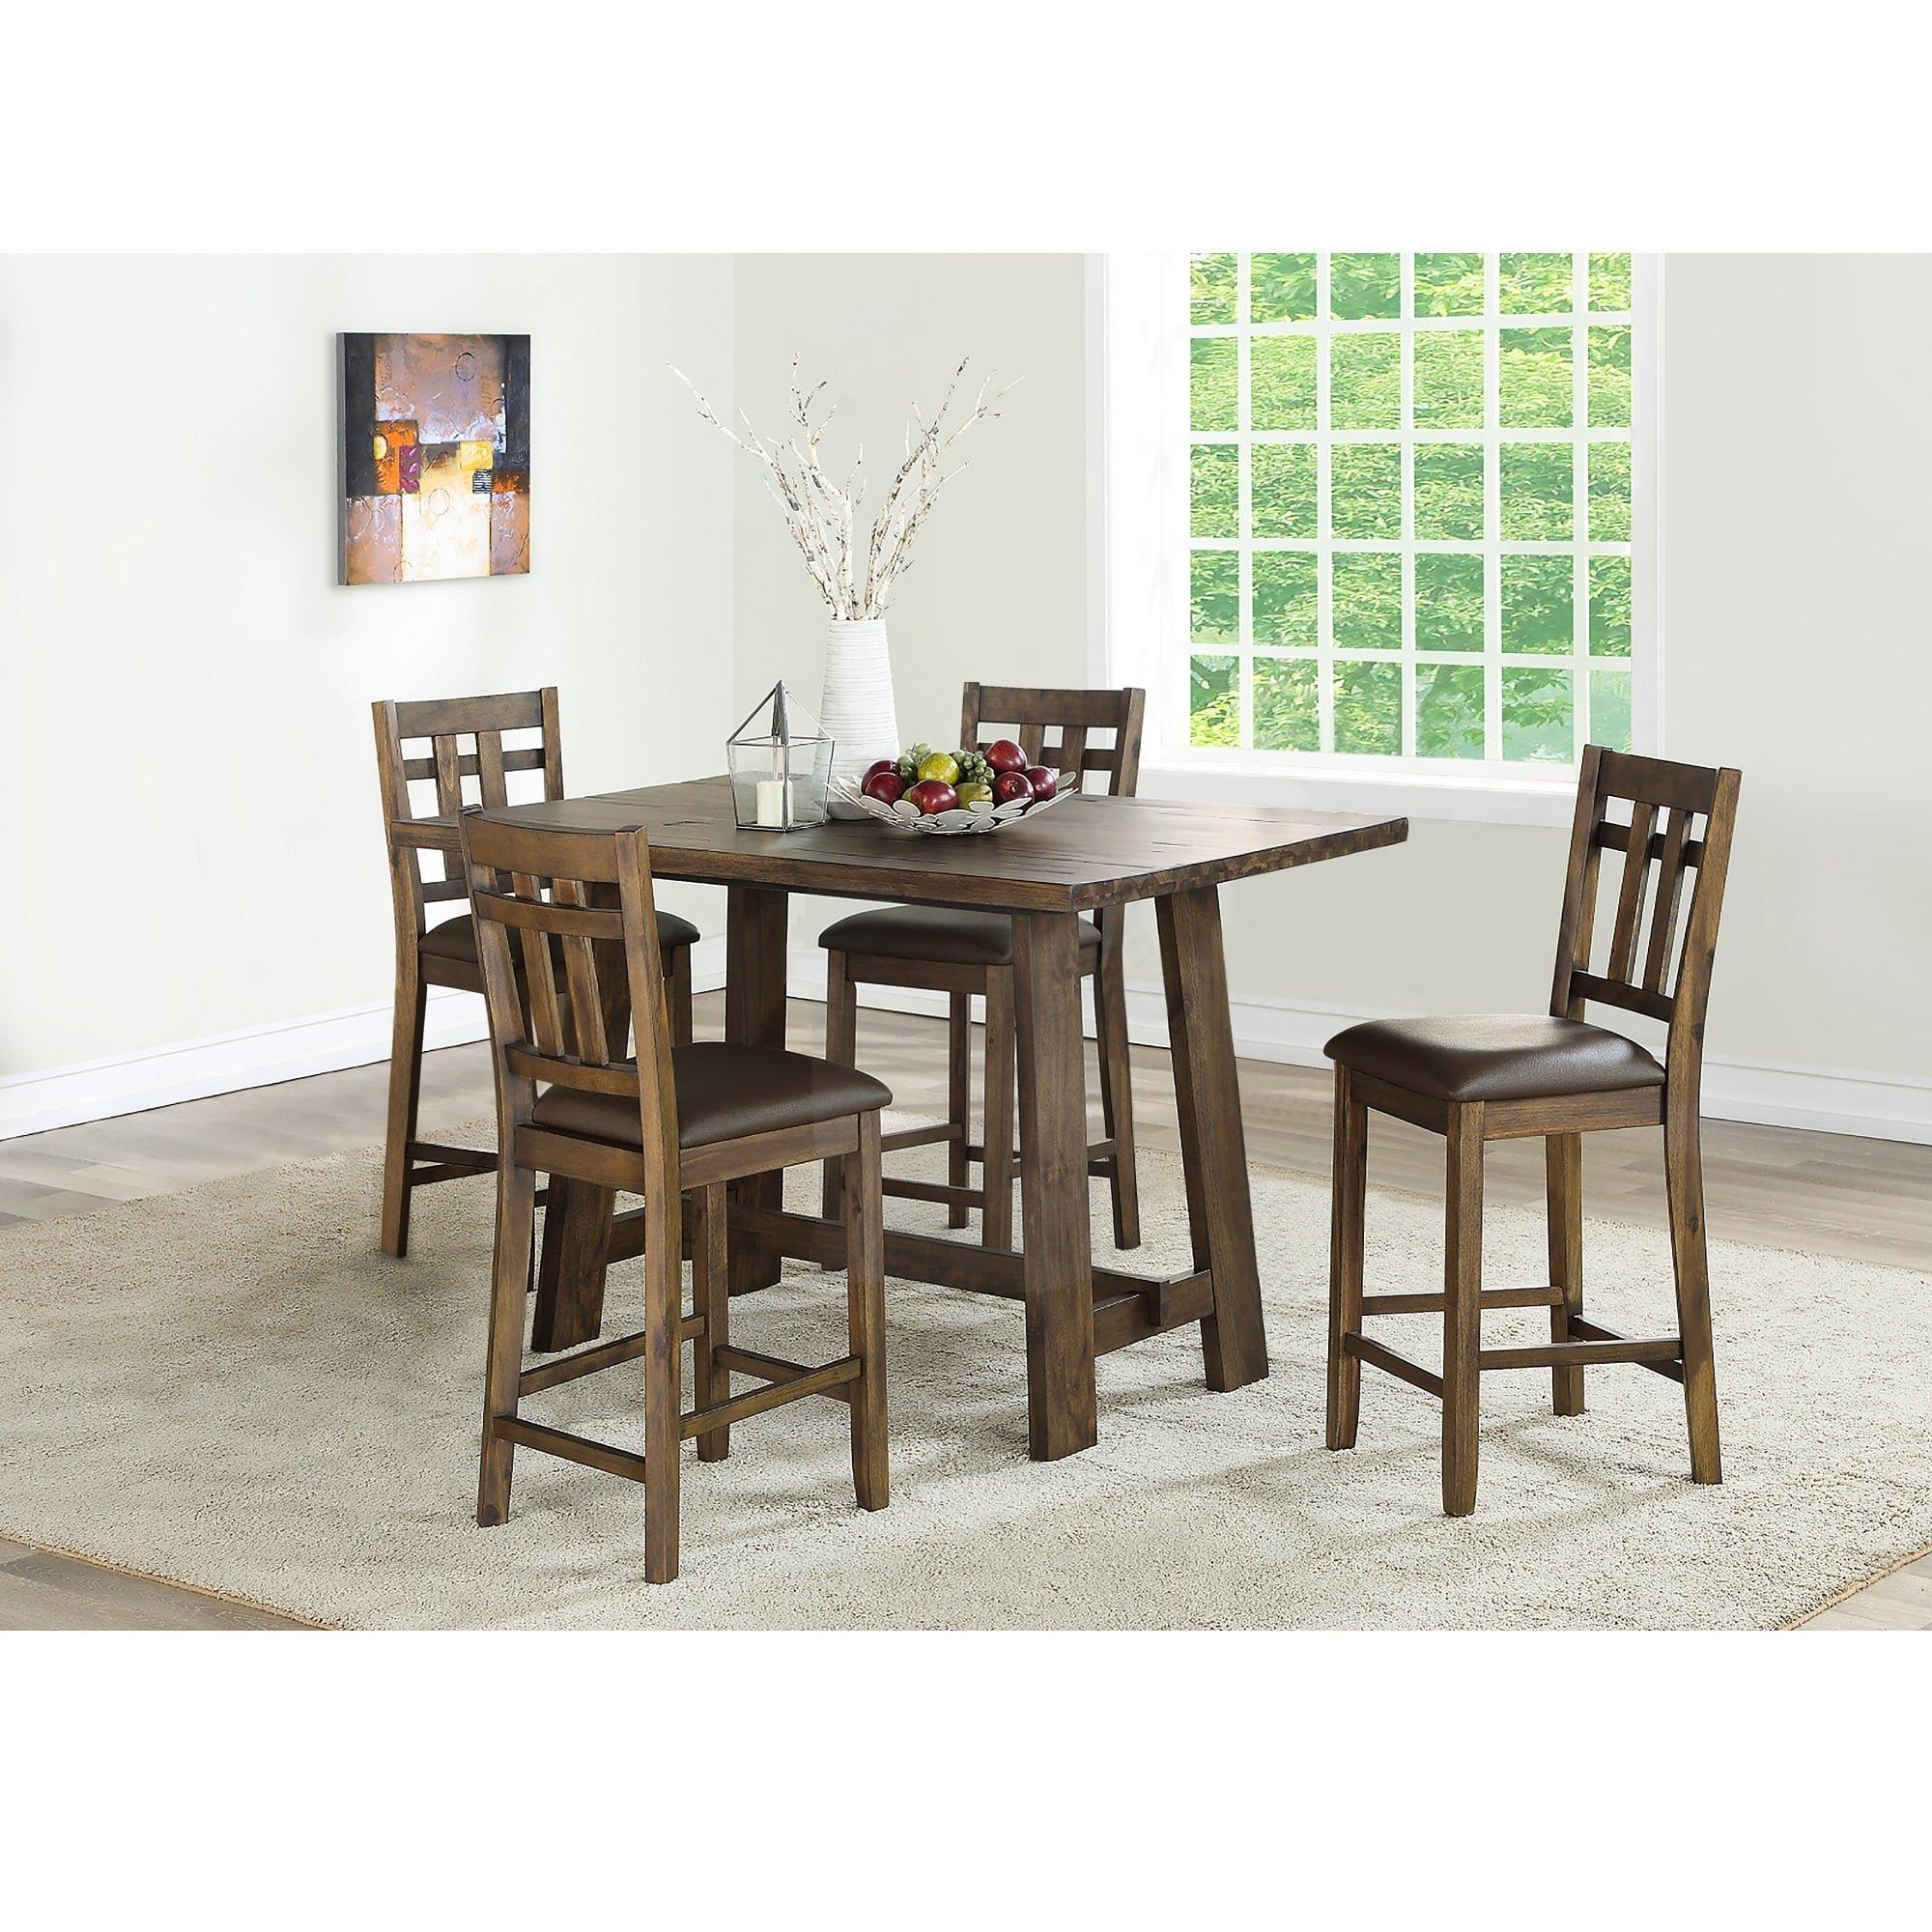 Rent To Own Steve Silver 5 Piece Saranac Counter Height Dining Room Collection At Aaron S Today